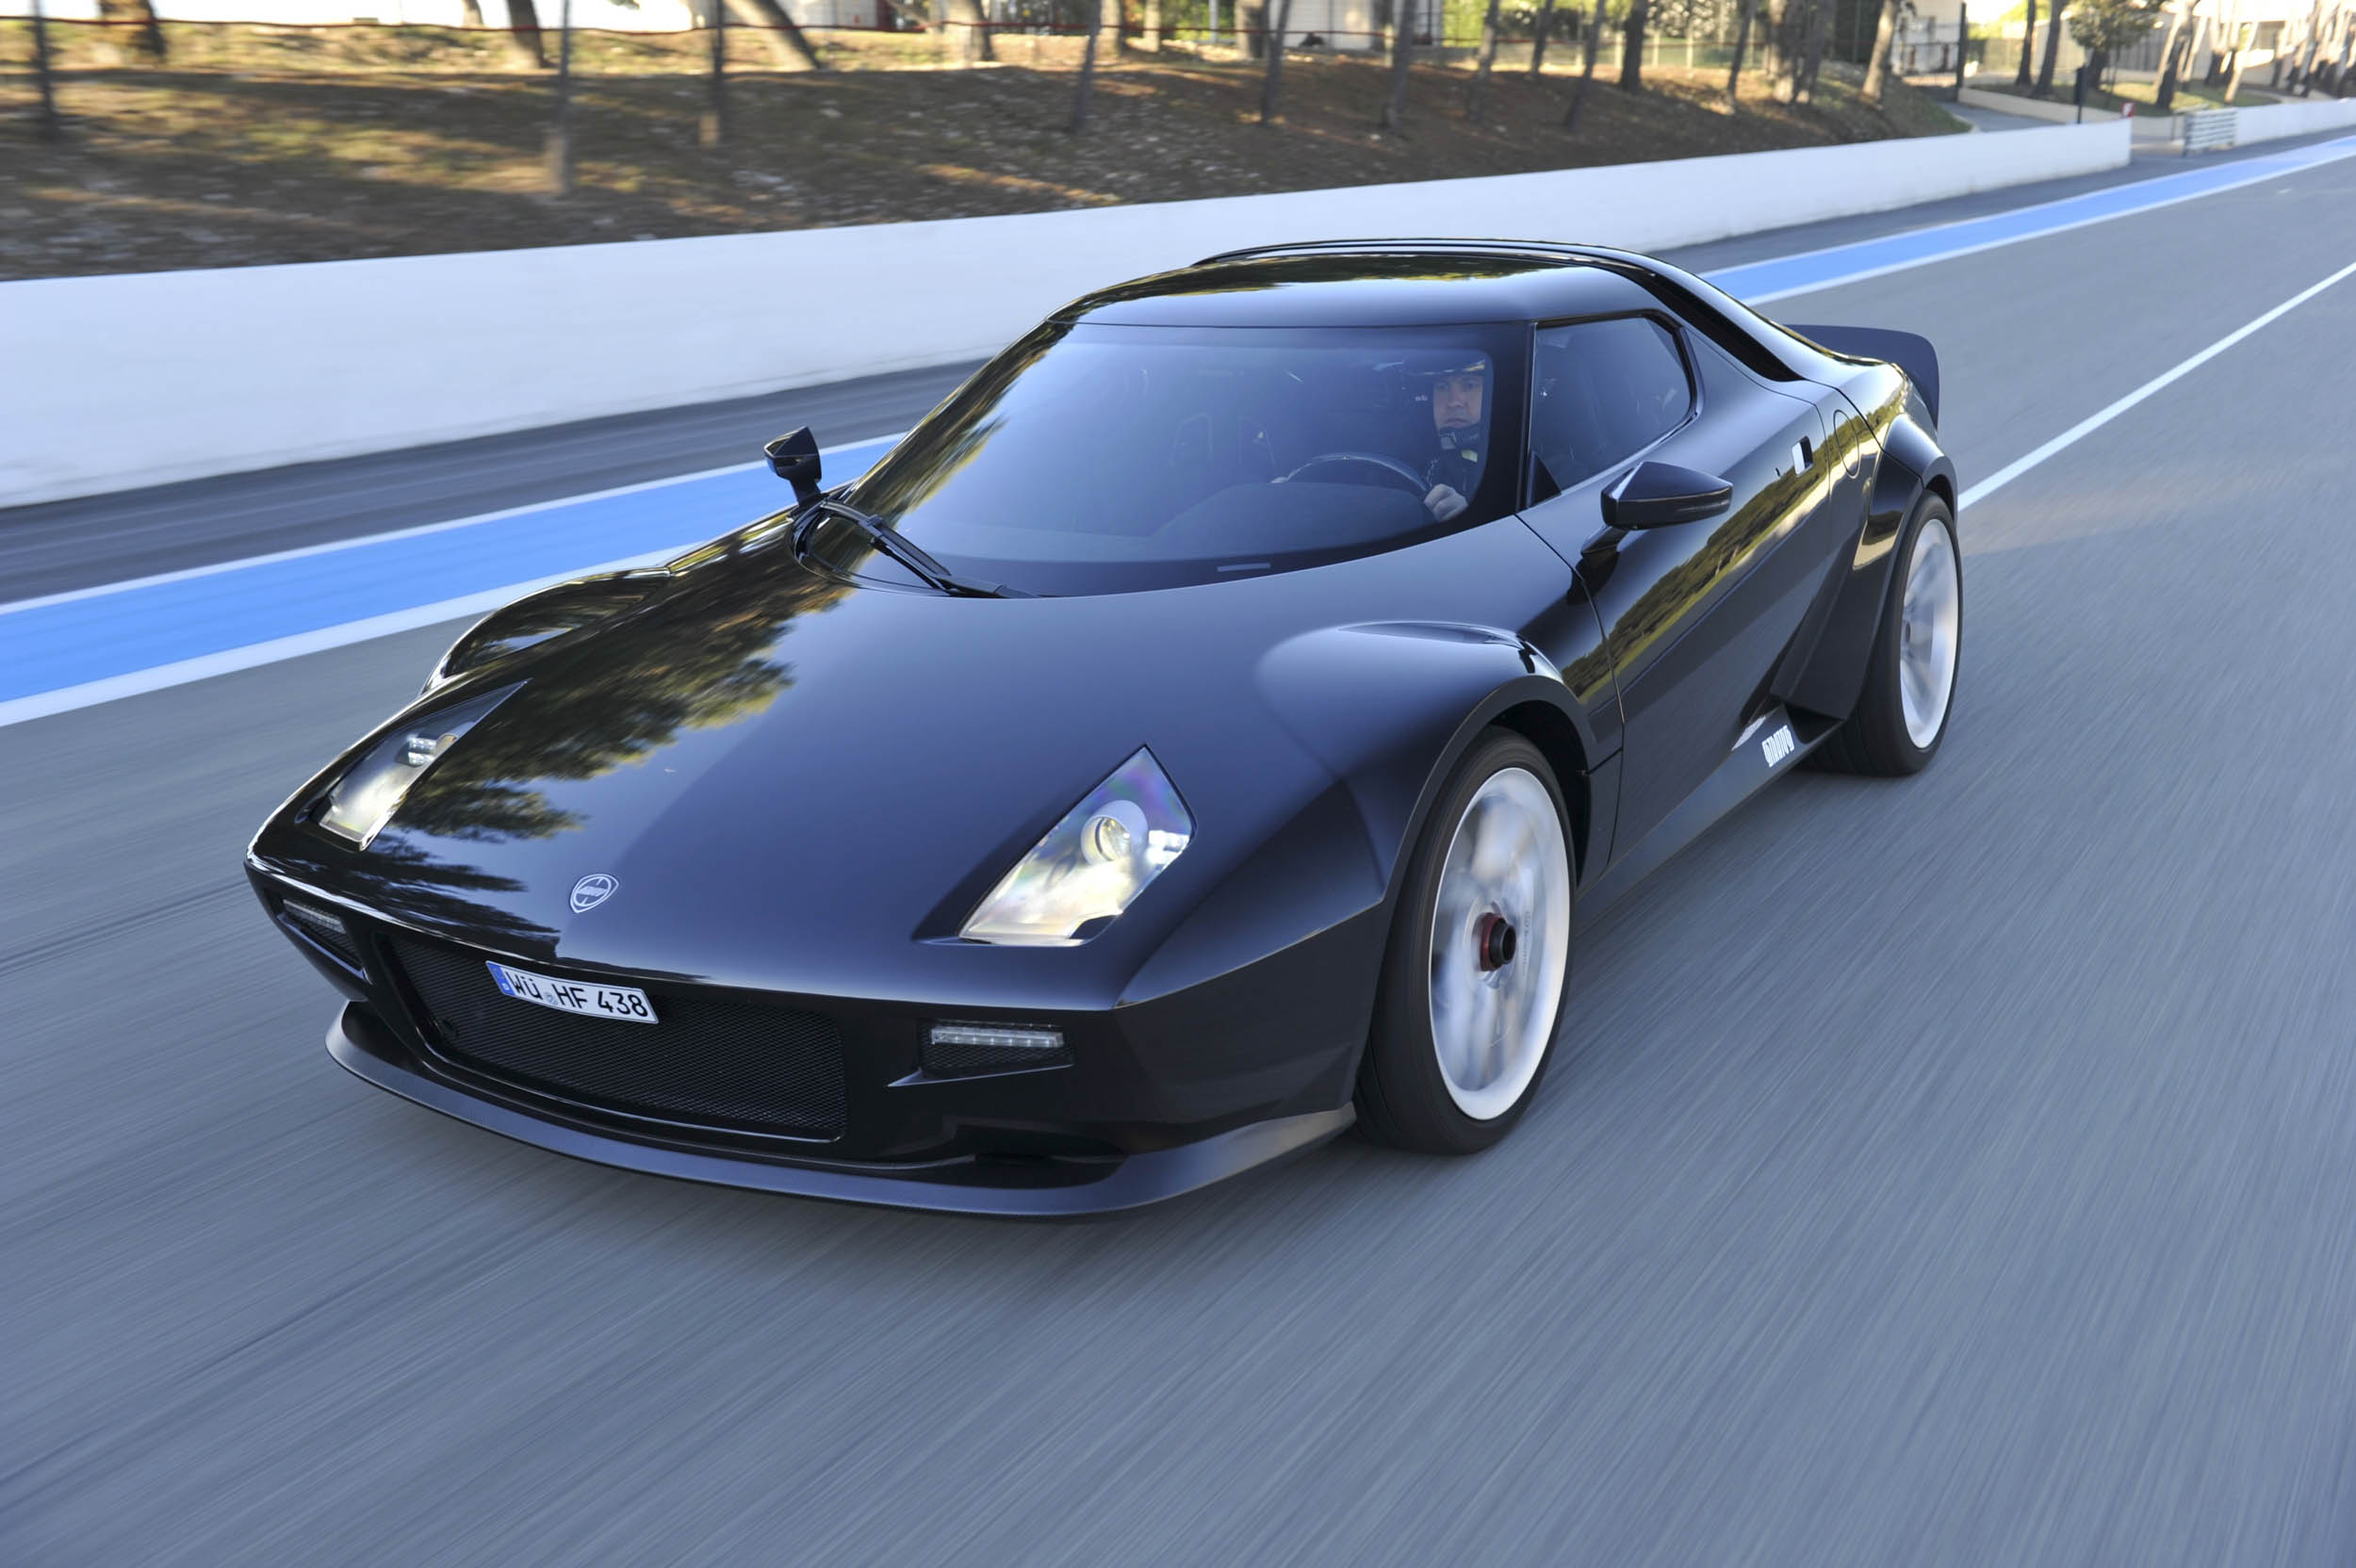 New Stratos driving front 3/4